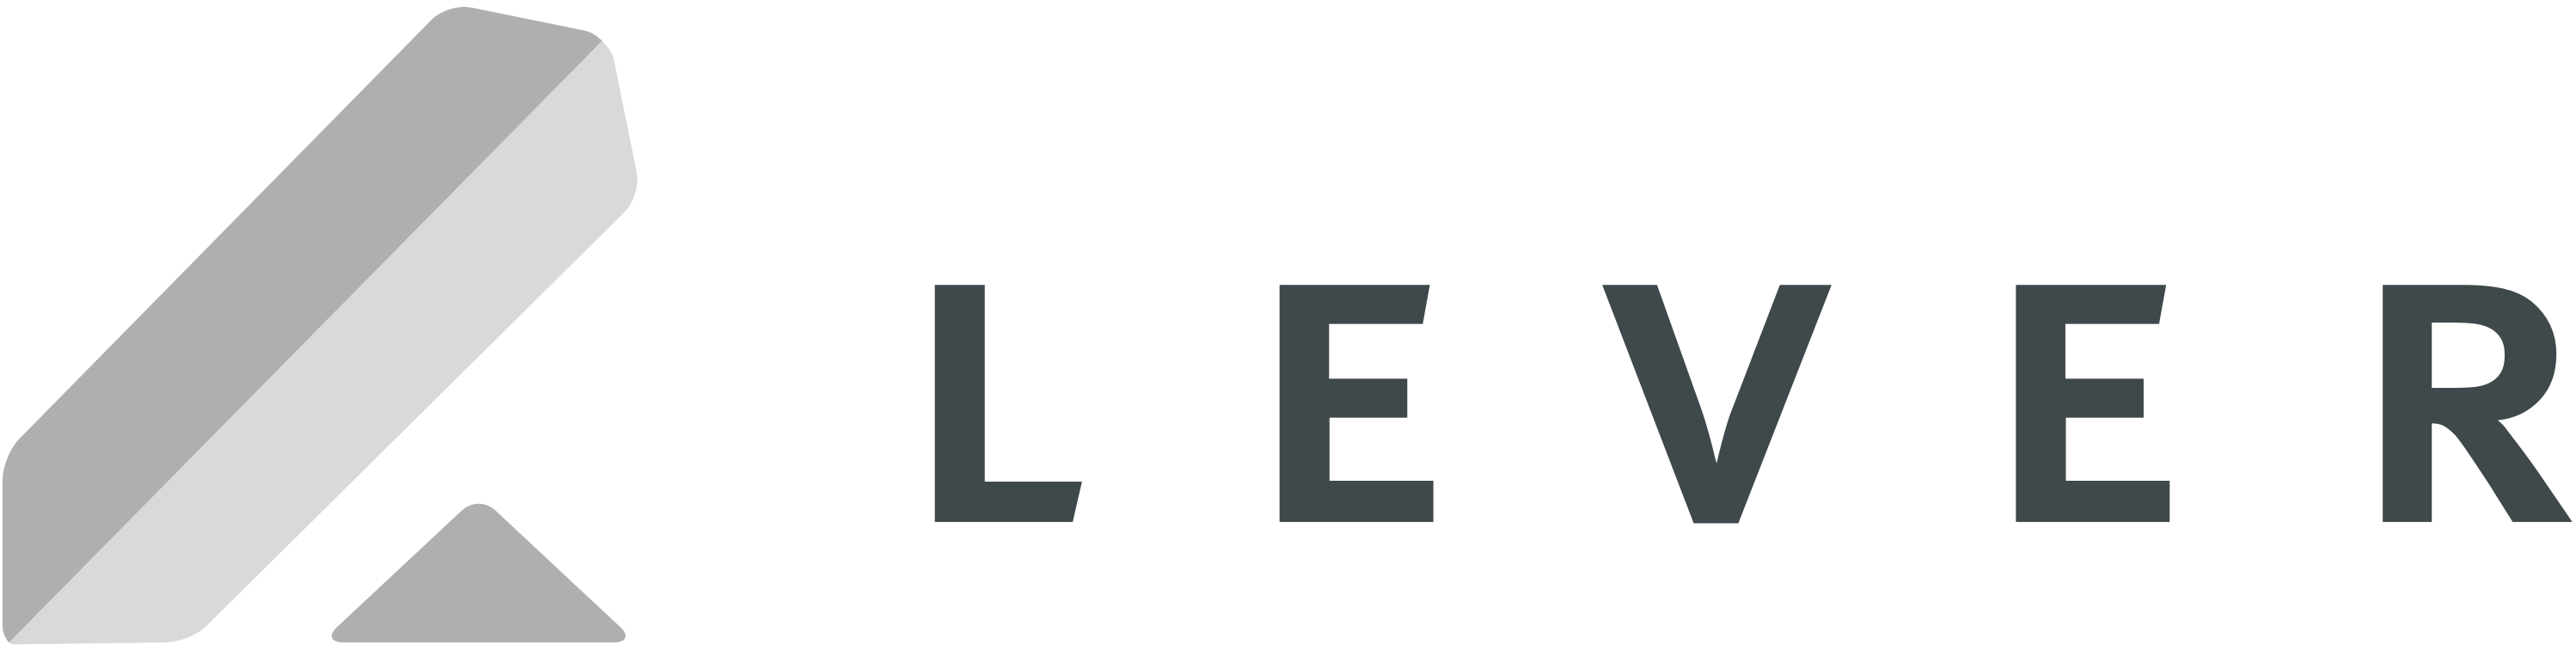 logo for Lever in grayscale